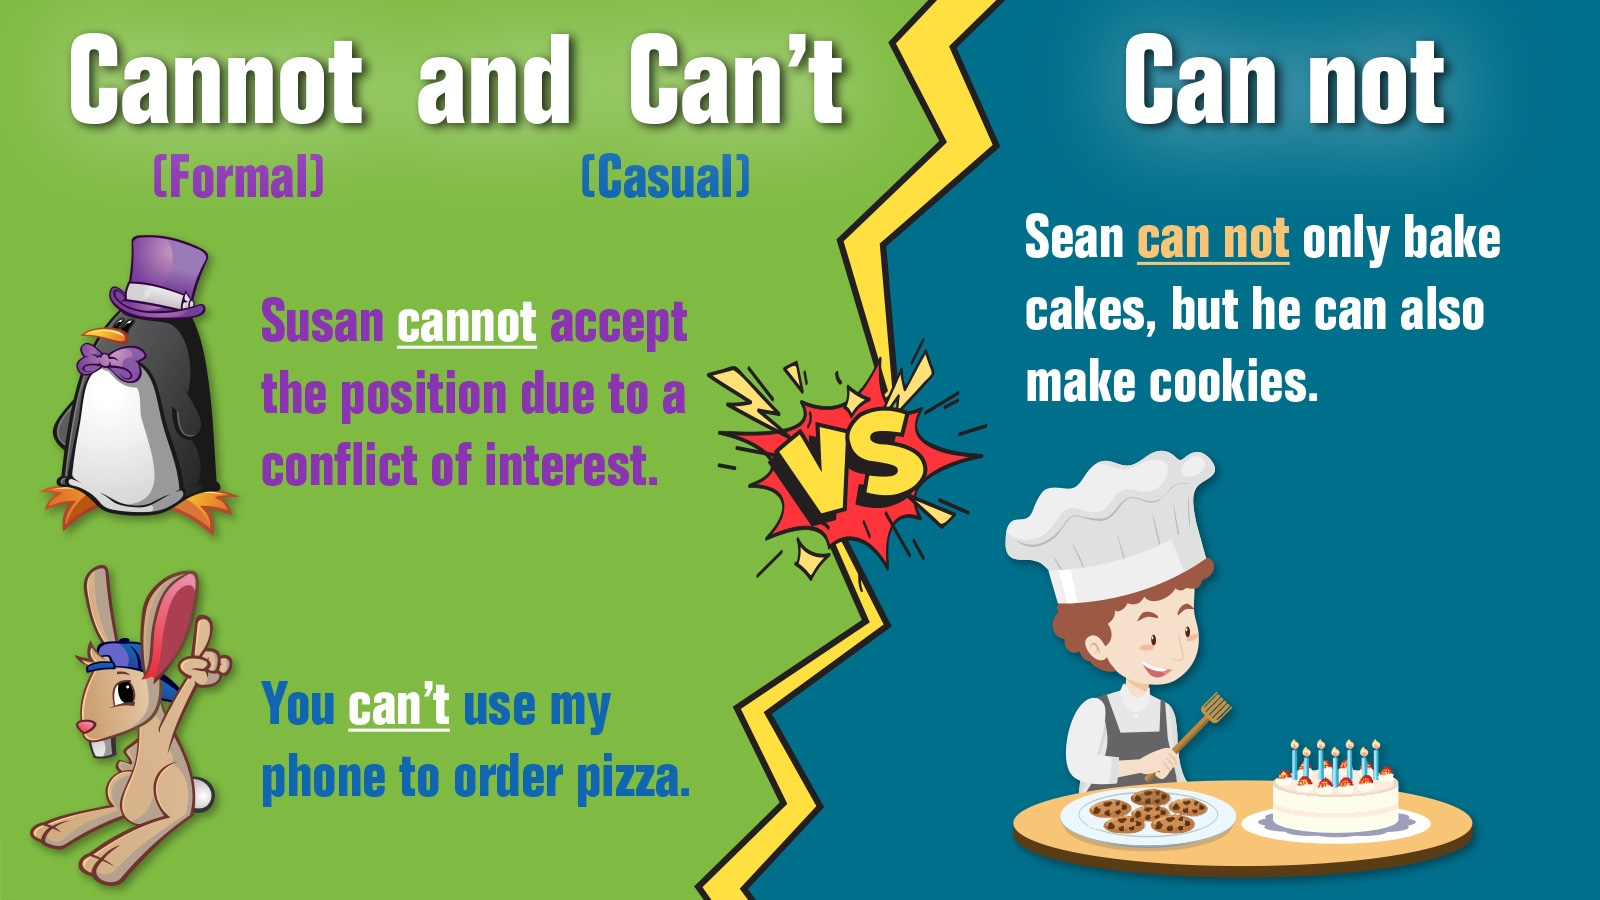 Cannot vs Can't vs Can not